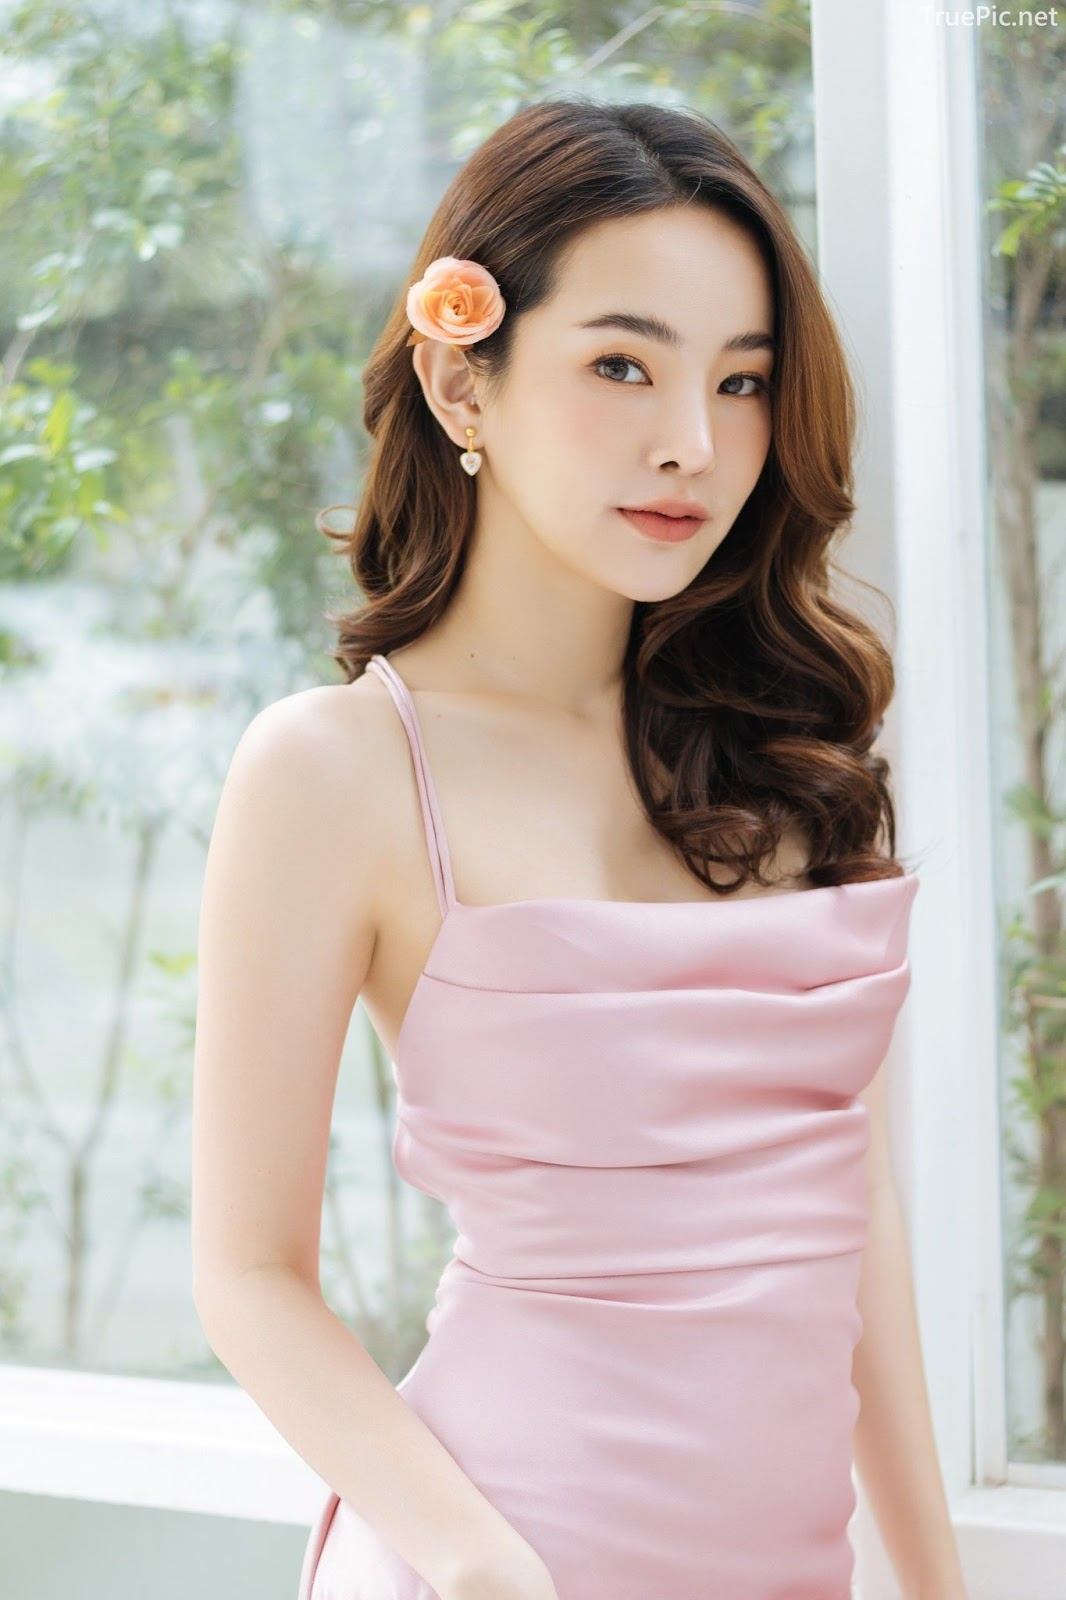 Beauty Thailand Pantipa Arunwattanachai attract glances from the photo album Stay Gorgeous - Picture 9